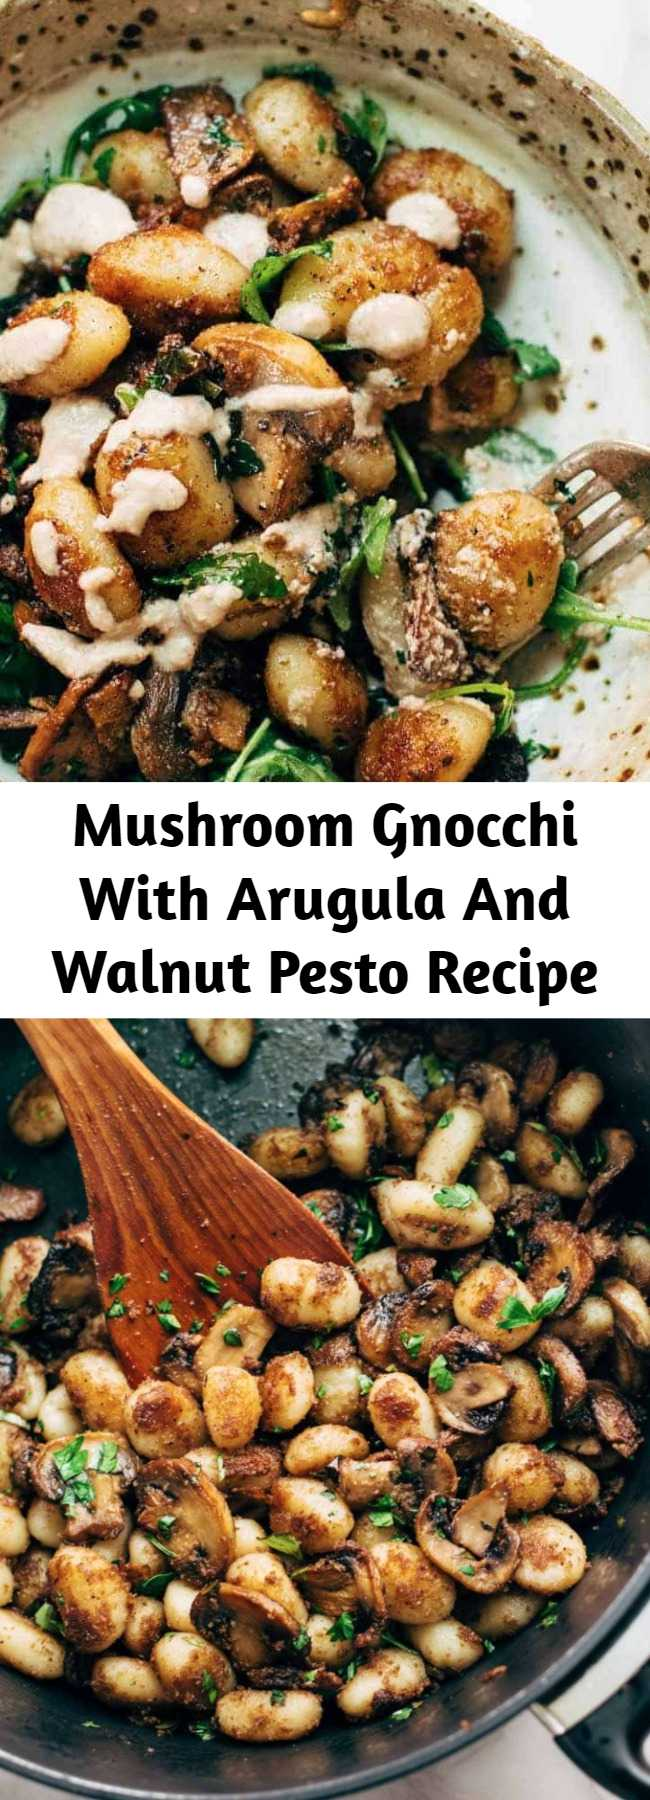 Mushroom Gnocchi With Arugula And Walnut Pesto Recipe - a vegetarian bowl that's made with familiar ingredients. Comes together in 30 minutes or less!